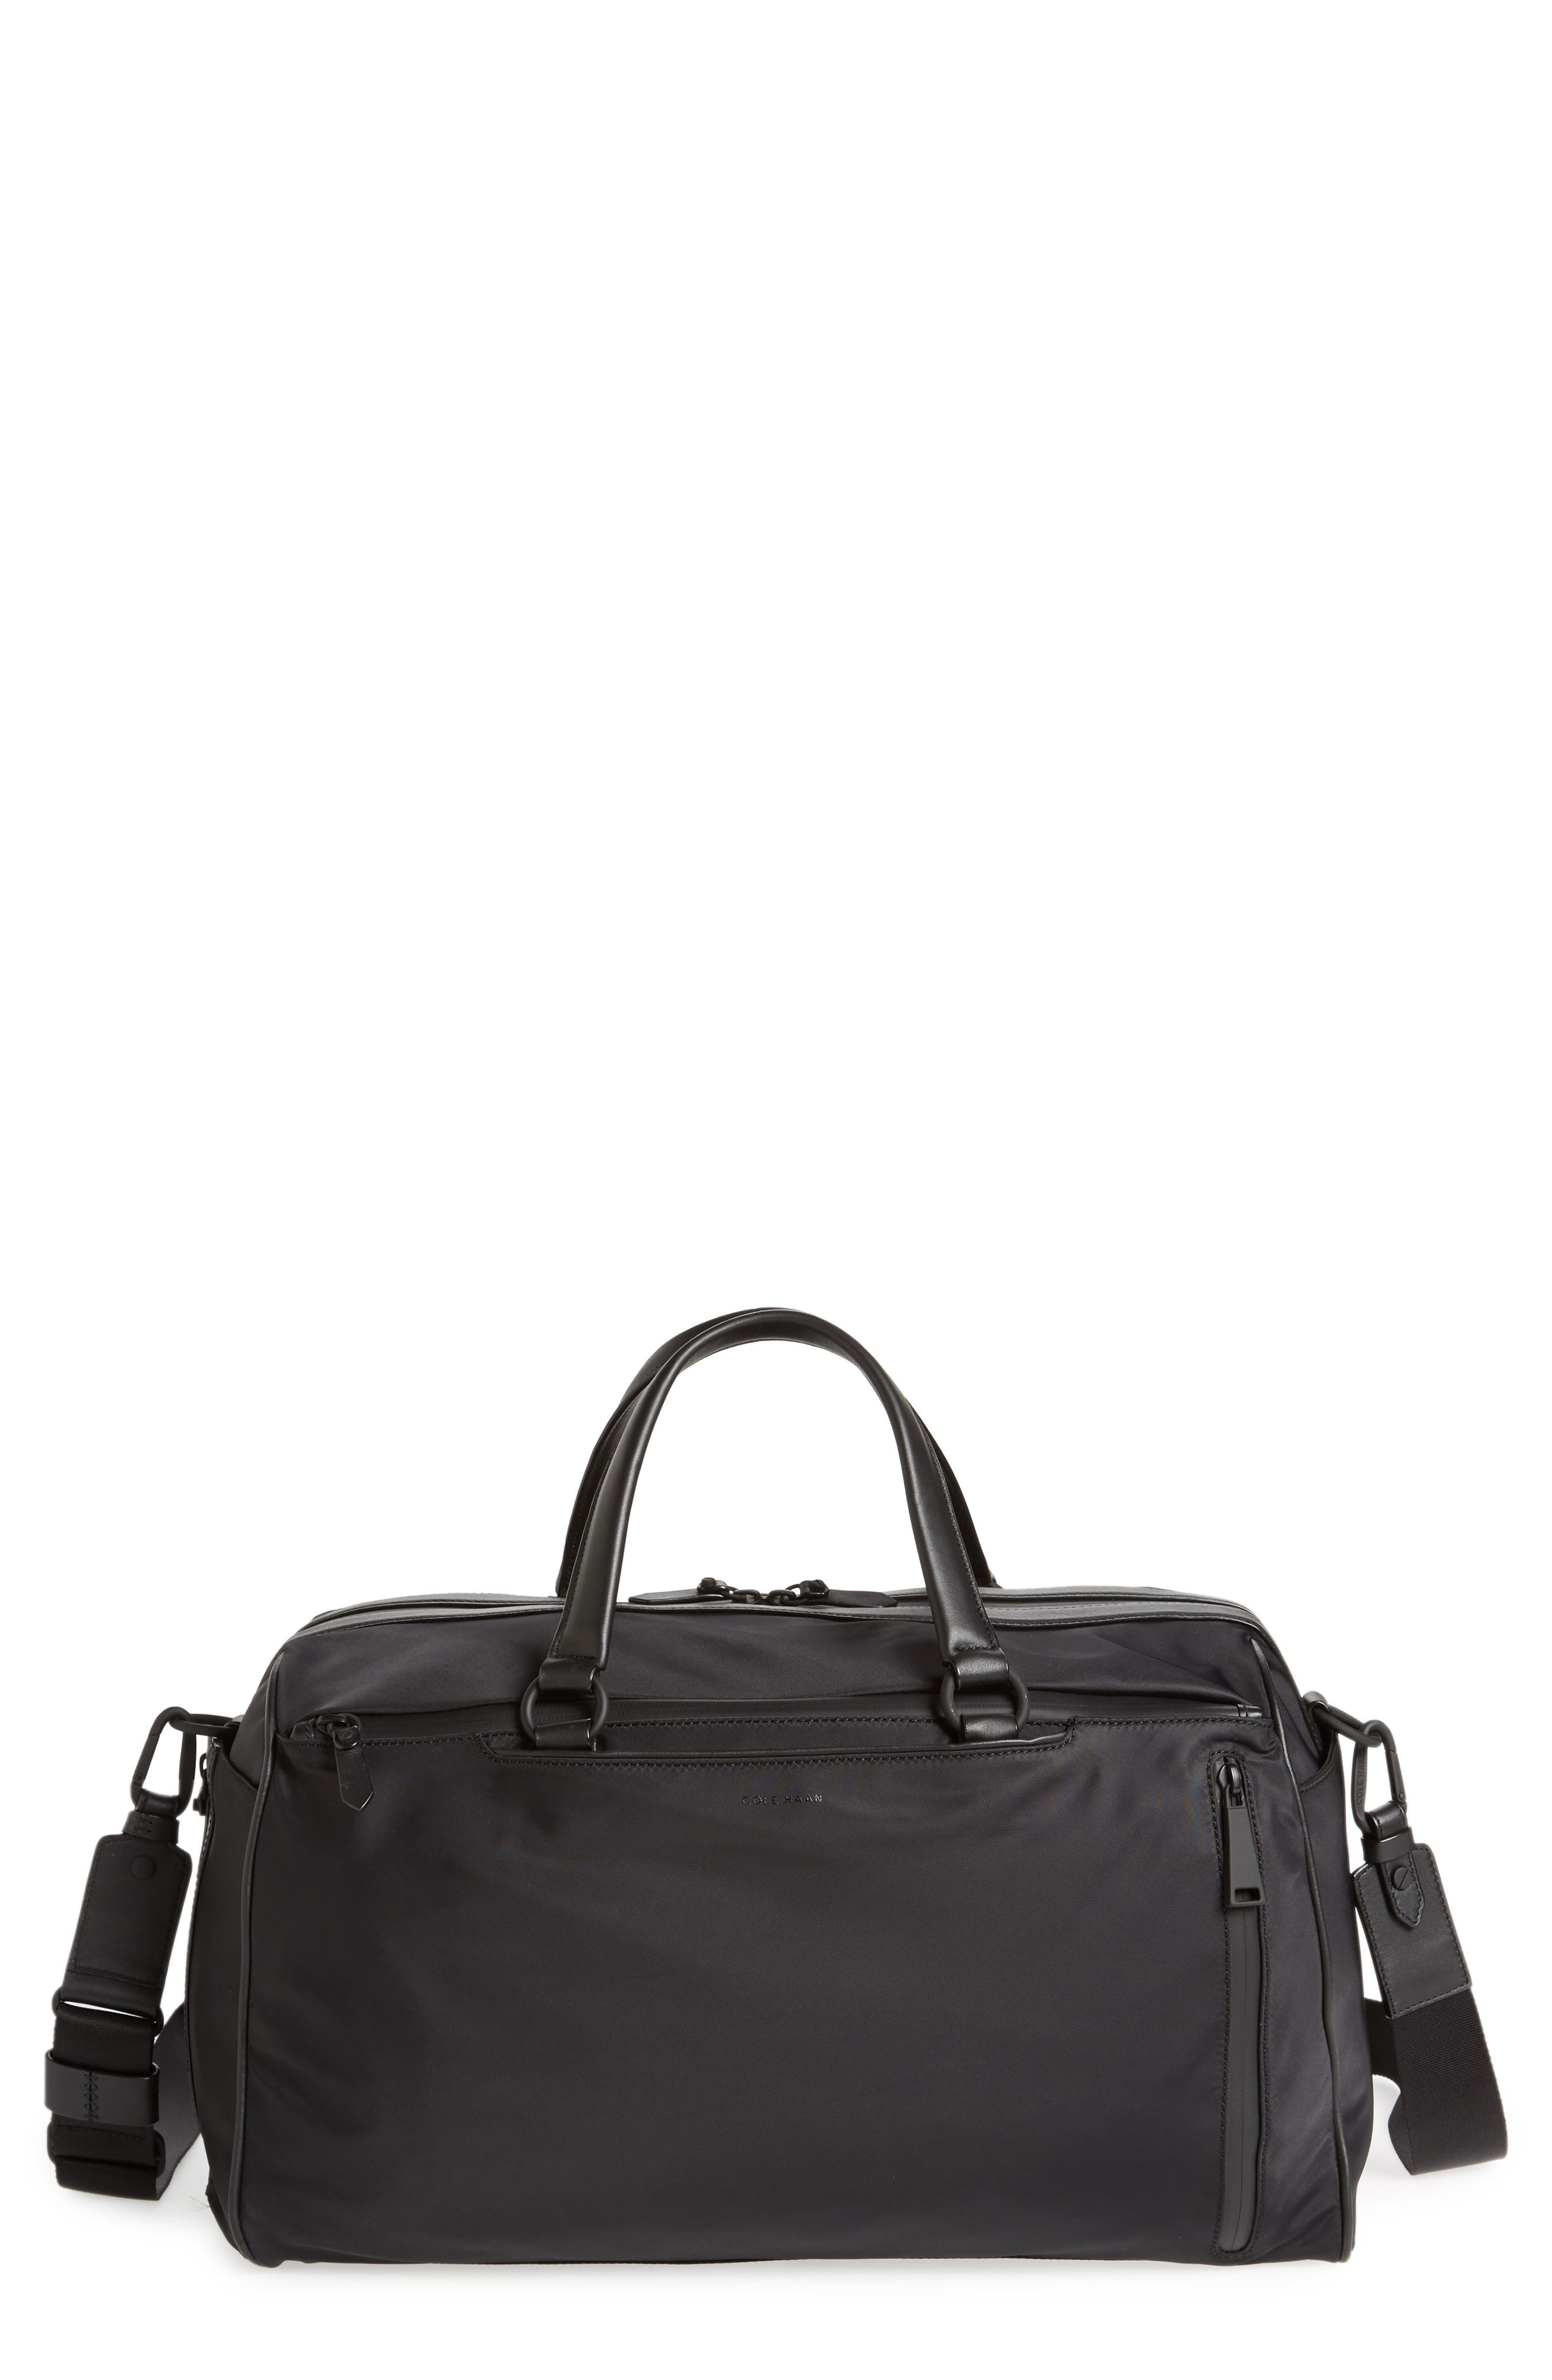 COLE HAAN Everyday Nylon Duffel Bag